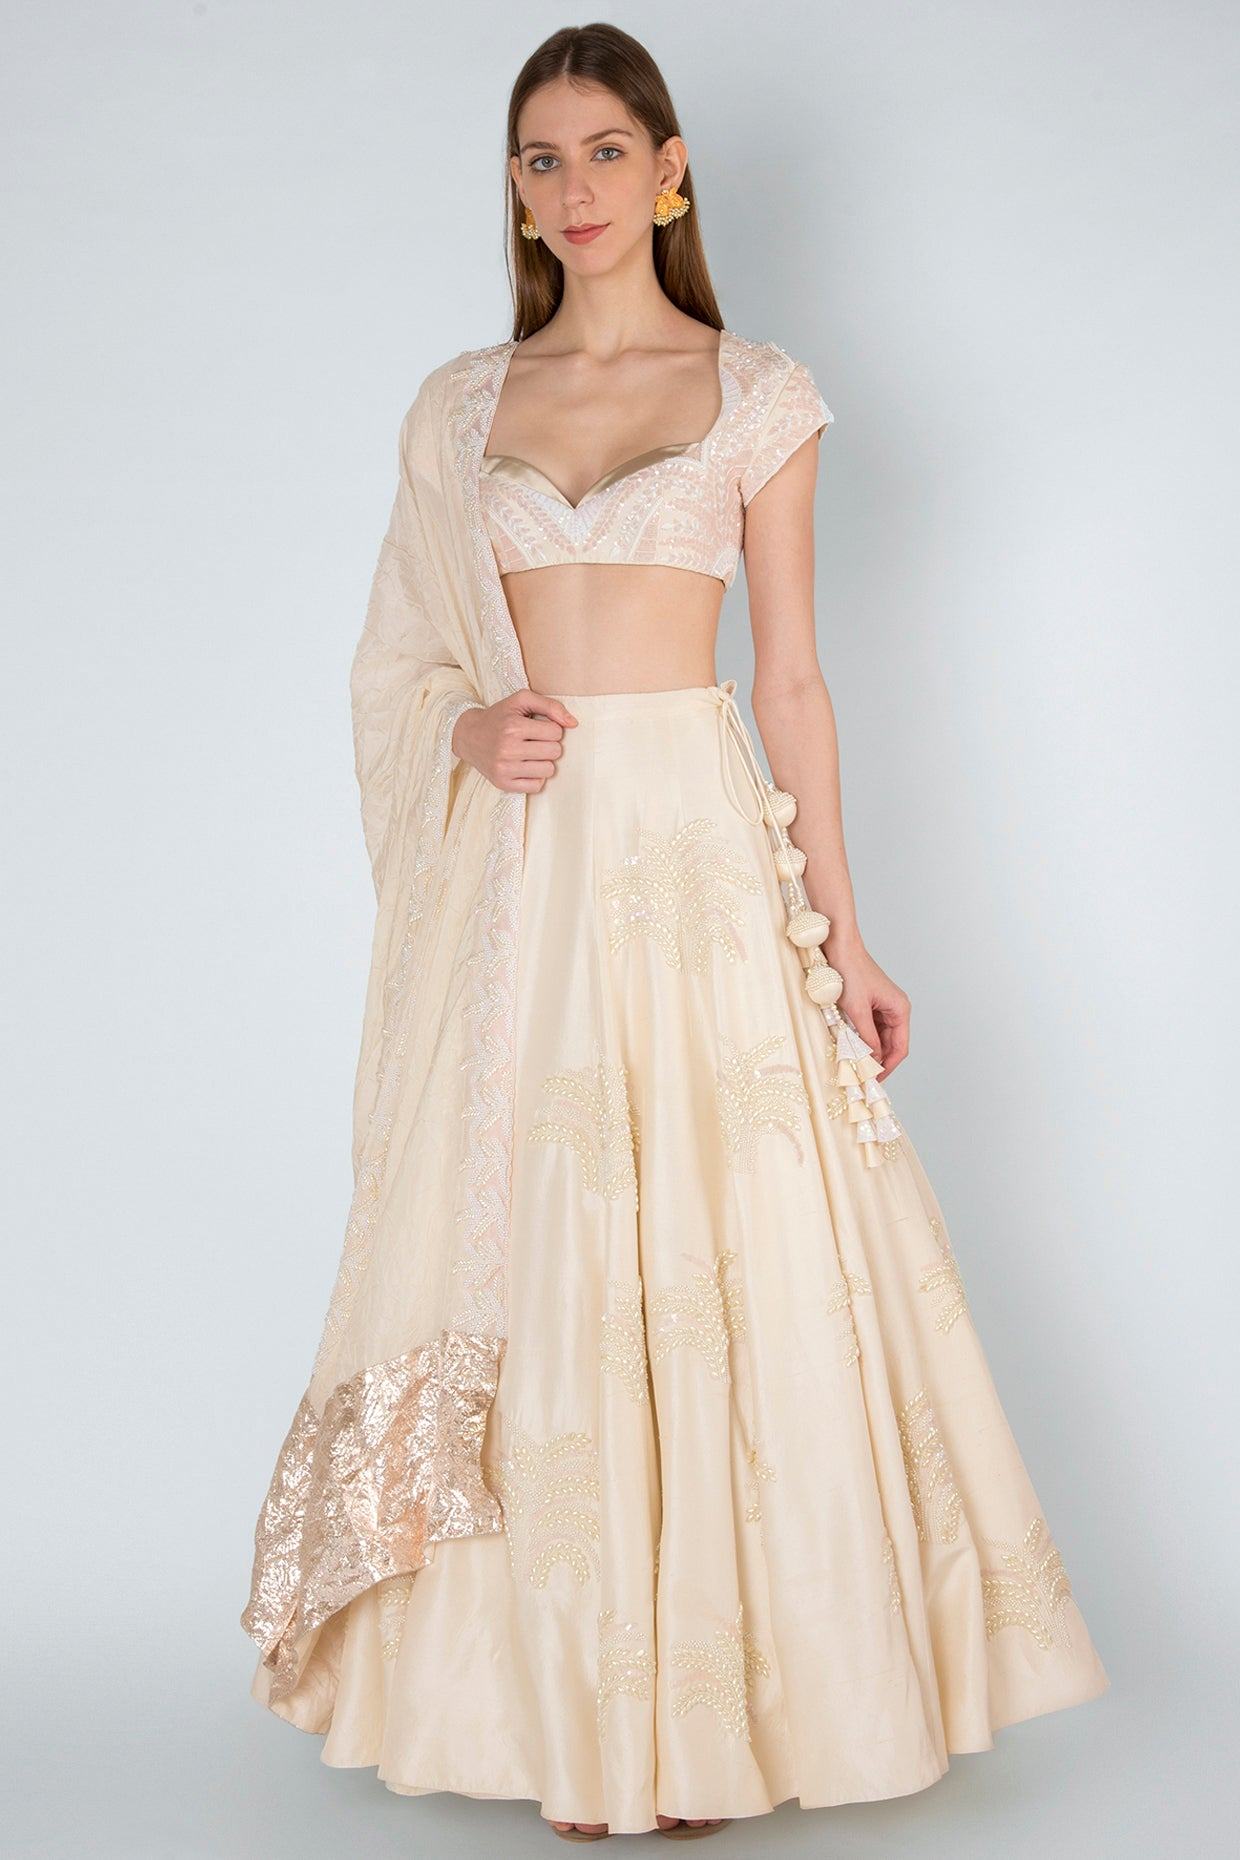 IVORY PEARL EMBROIDERY BLOUSE &LEHENGA WITH IVORY CRUSH DUPATTA - The Grand Trunk